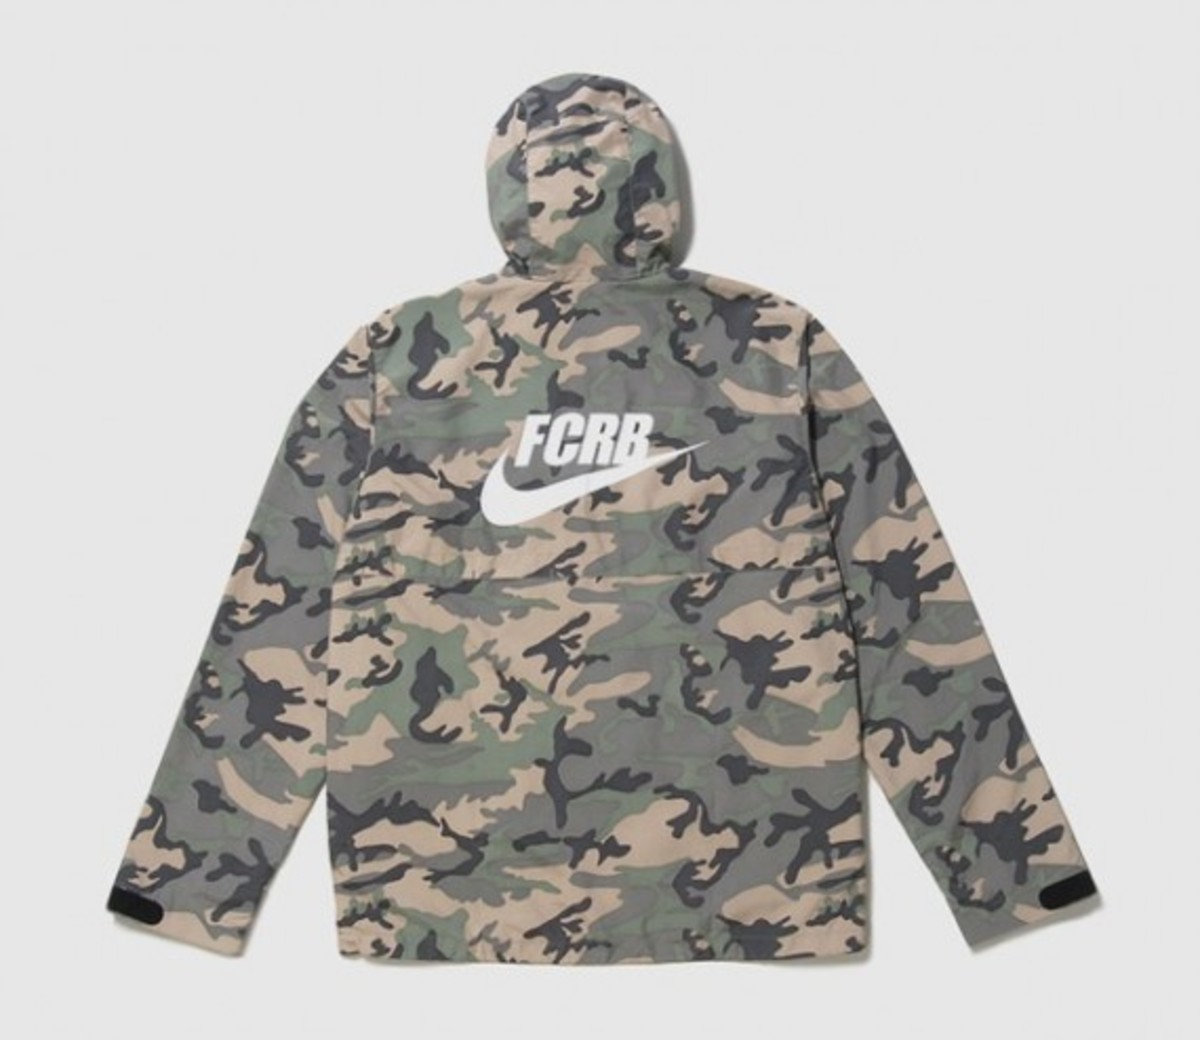 fcrb_ss10_camouflage_2